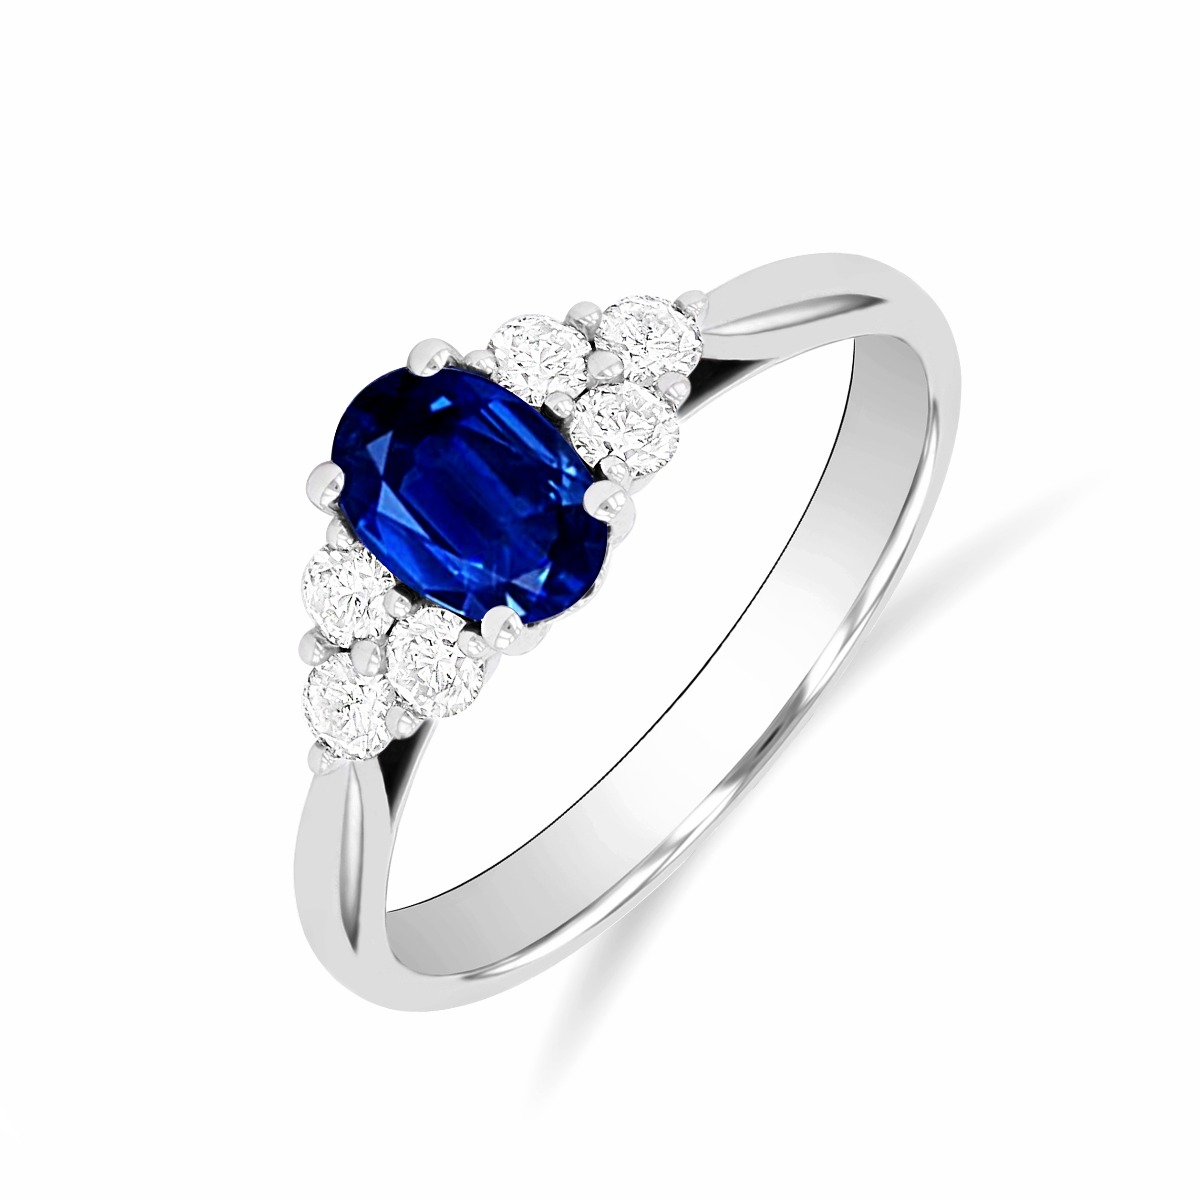 Riviera Collection 0.55ct Oval Sapphire & Diamond Ring | 9K White Gold